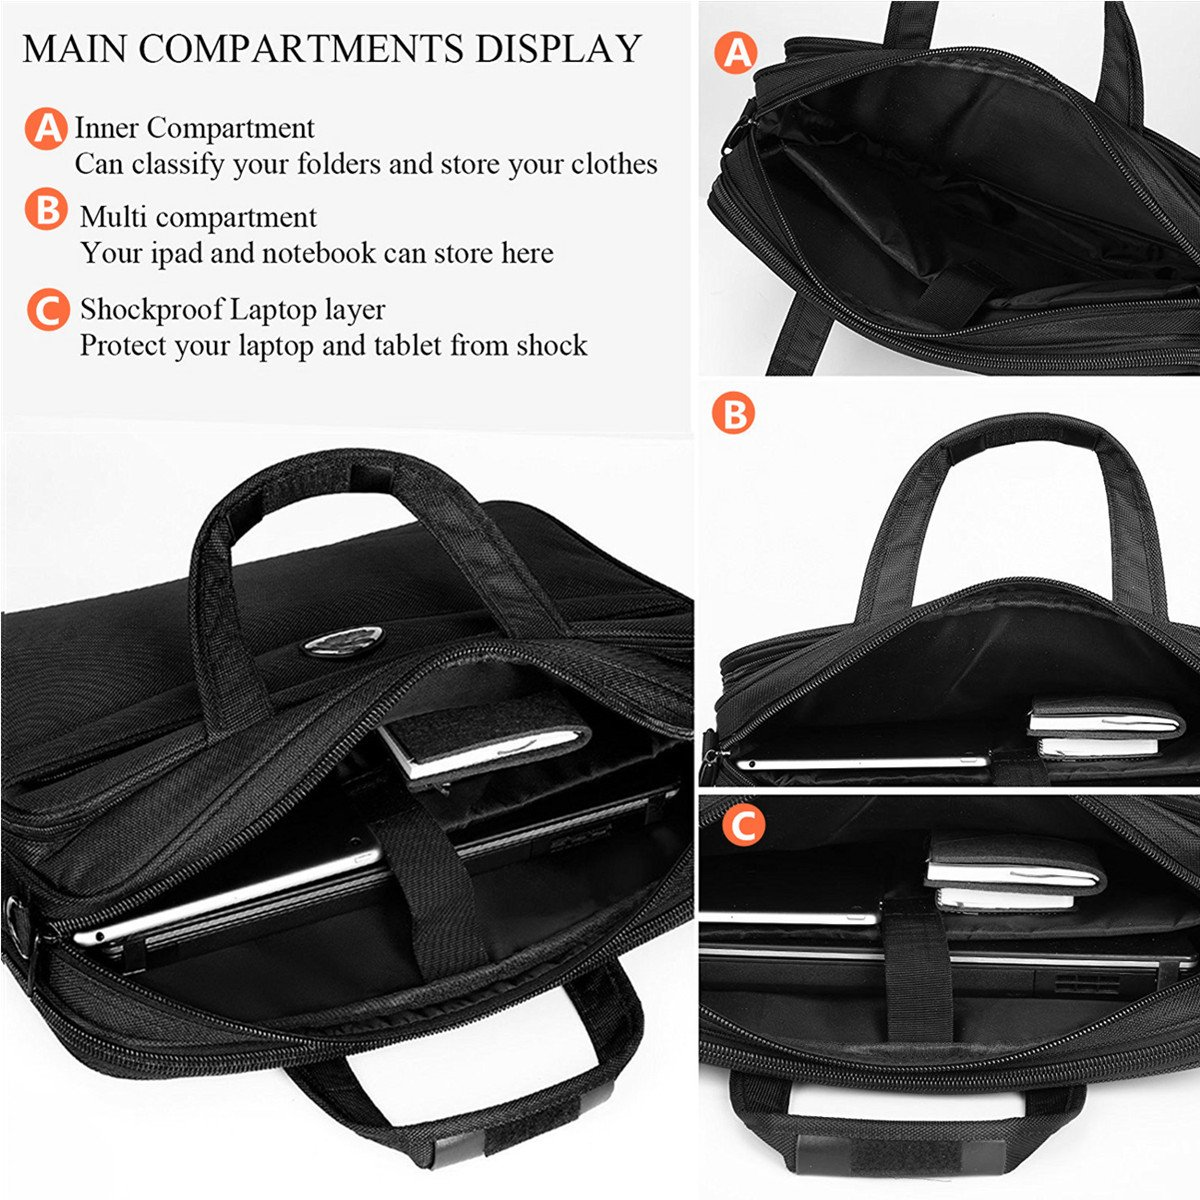 Briefcase 15.6 Inch Laptop Bag Laptop Messenger Bag, Business Office Bag Multifunctional Laptop Case Shoulder Bags for Men Women Fit for 15'' 15.6 Inch Acer HP Dell Lenovo Computer Notebook MacBook by Top Super (Image #2)